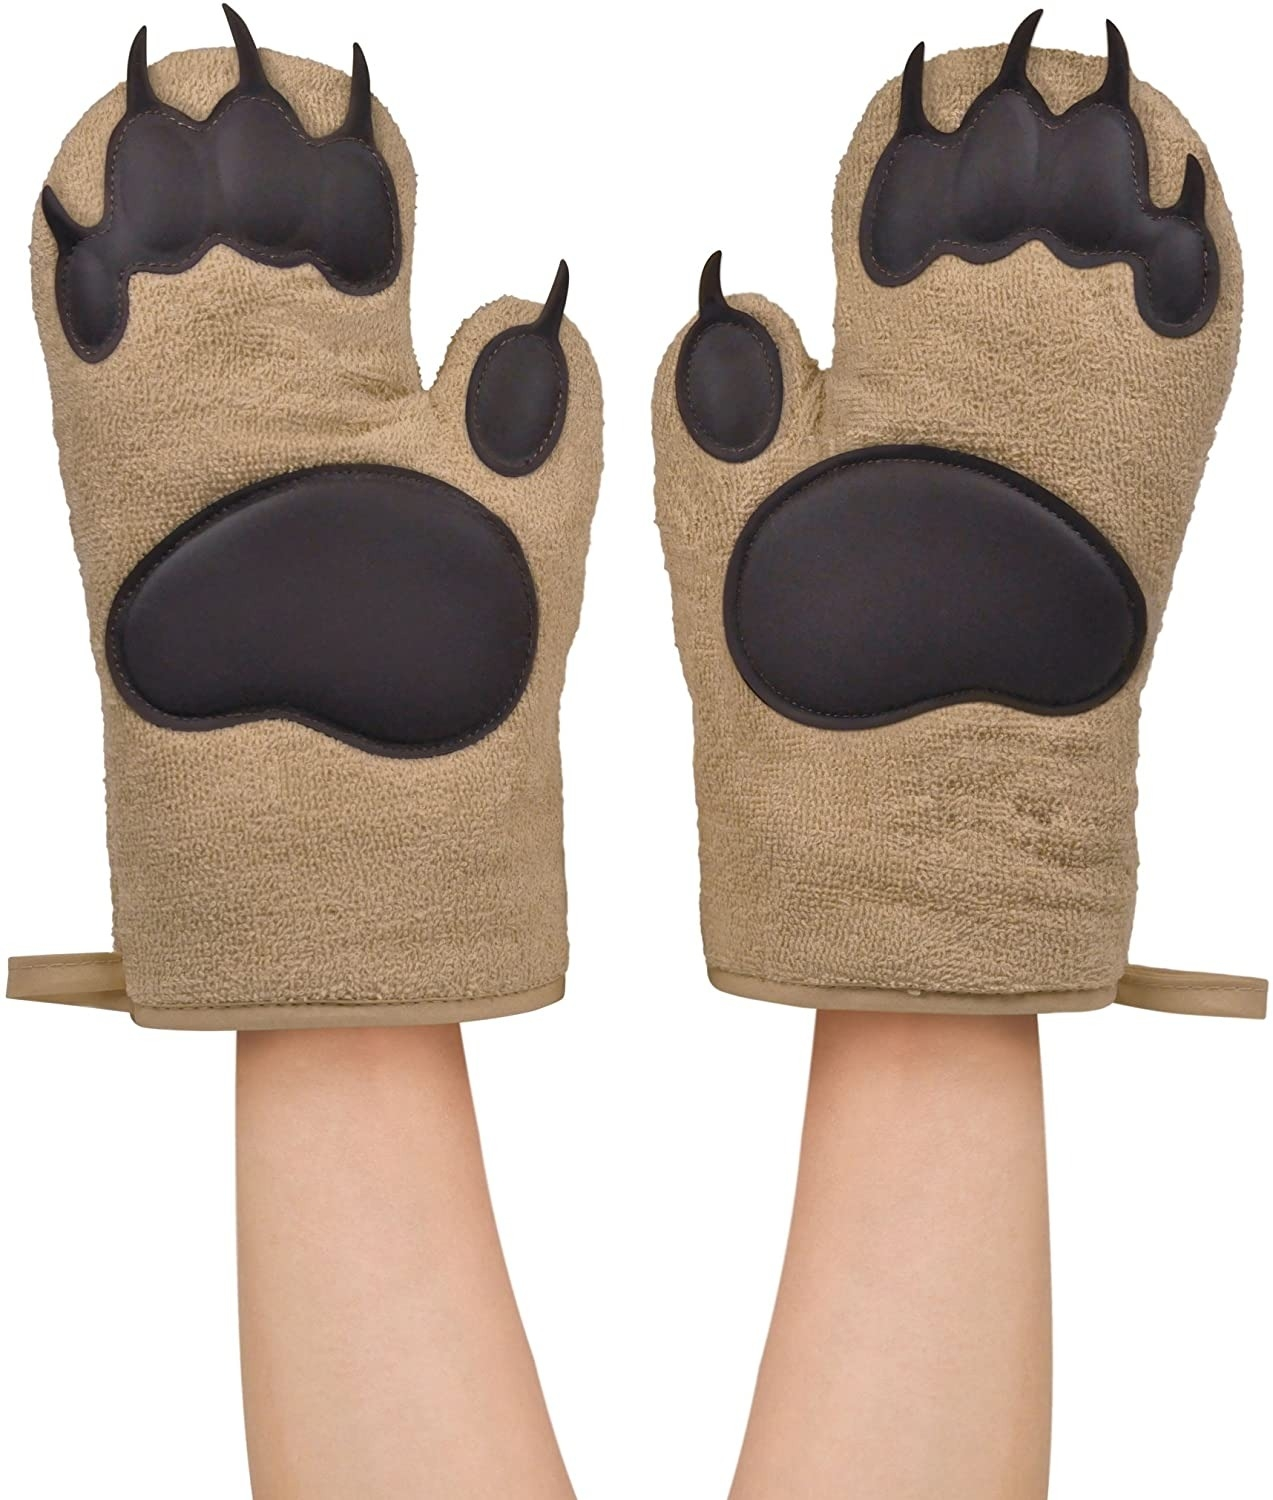 Oven Mittens